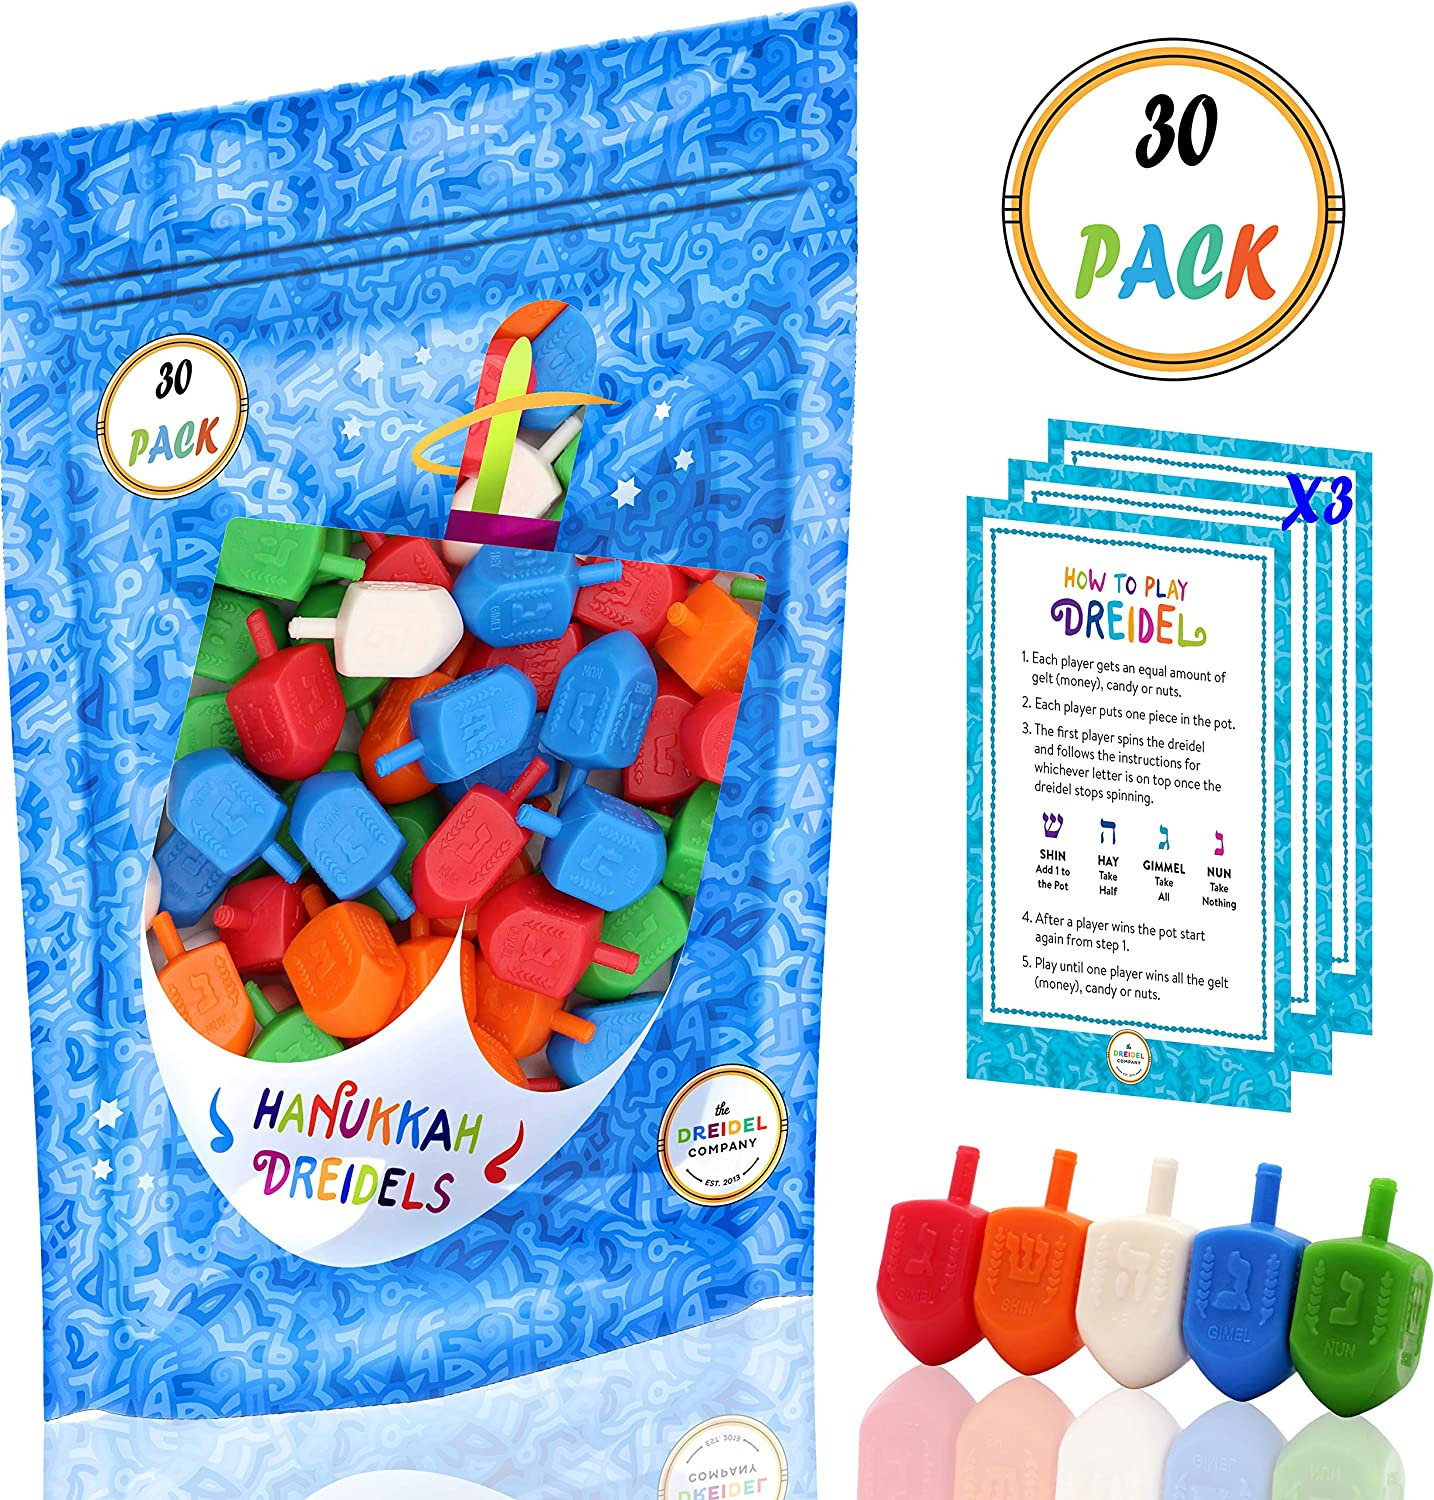 Hanukkah Dreidels Multi Color Wood Hanukkah Dreidels The Dreidel Company 10-Pack 100-Pack